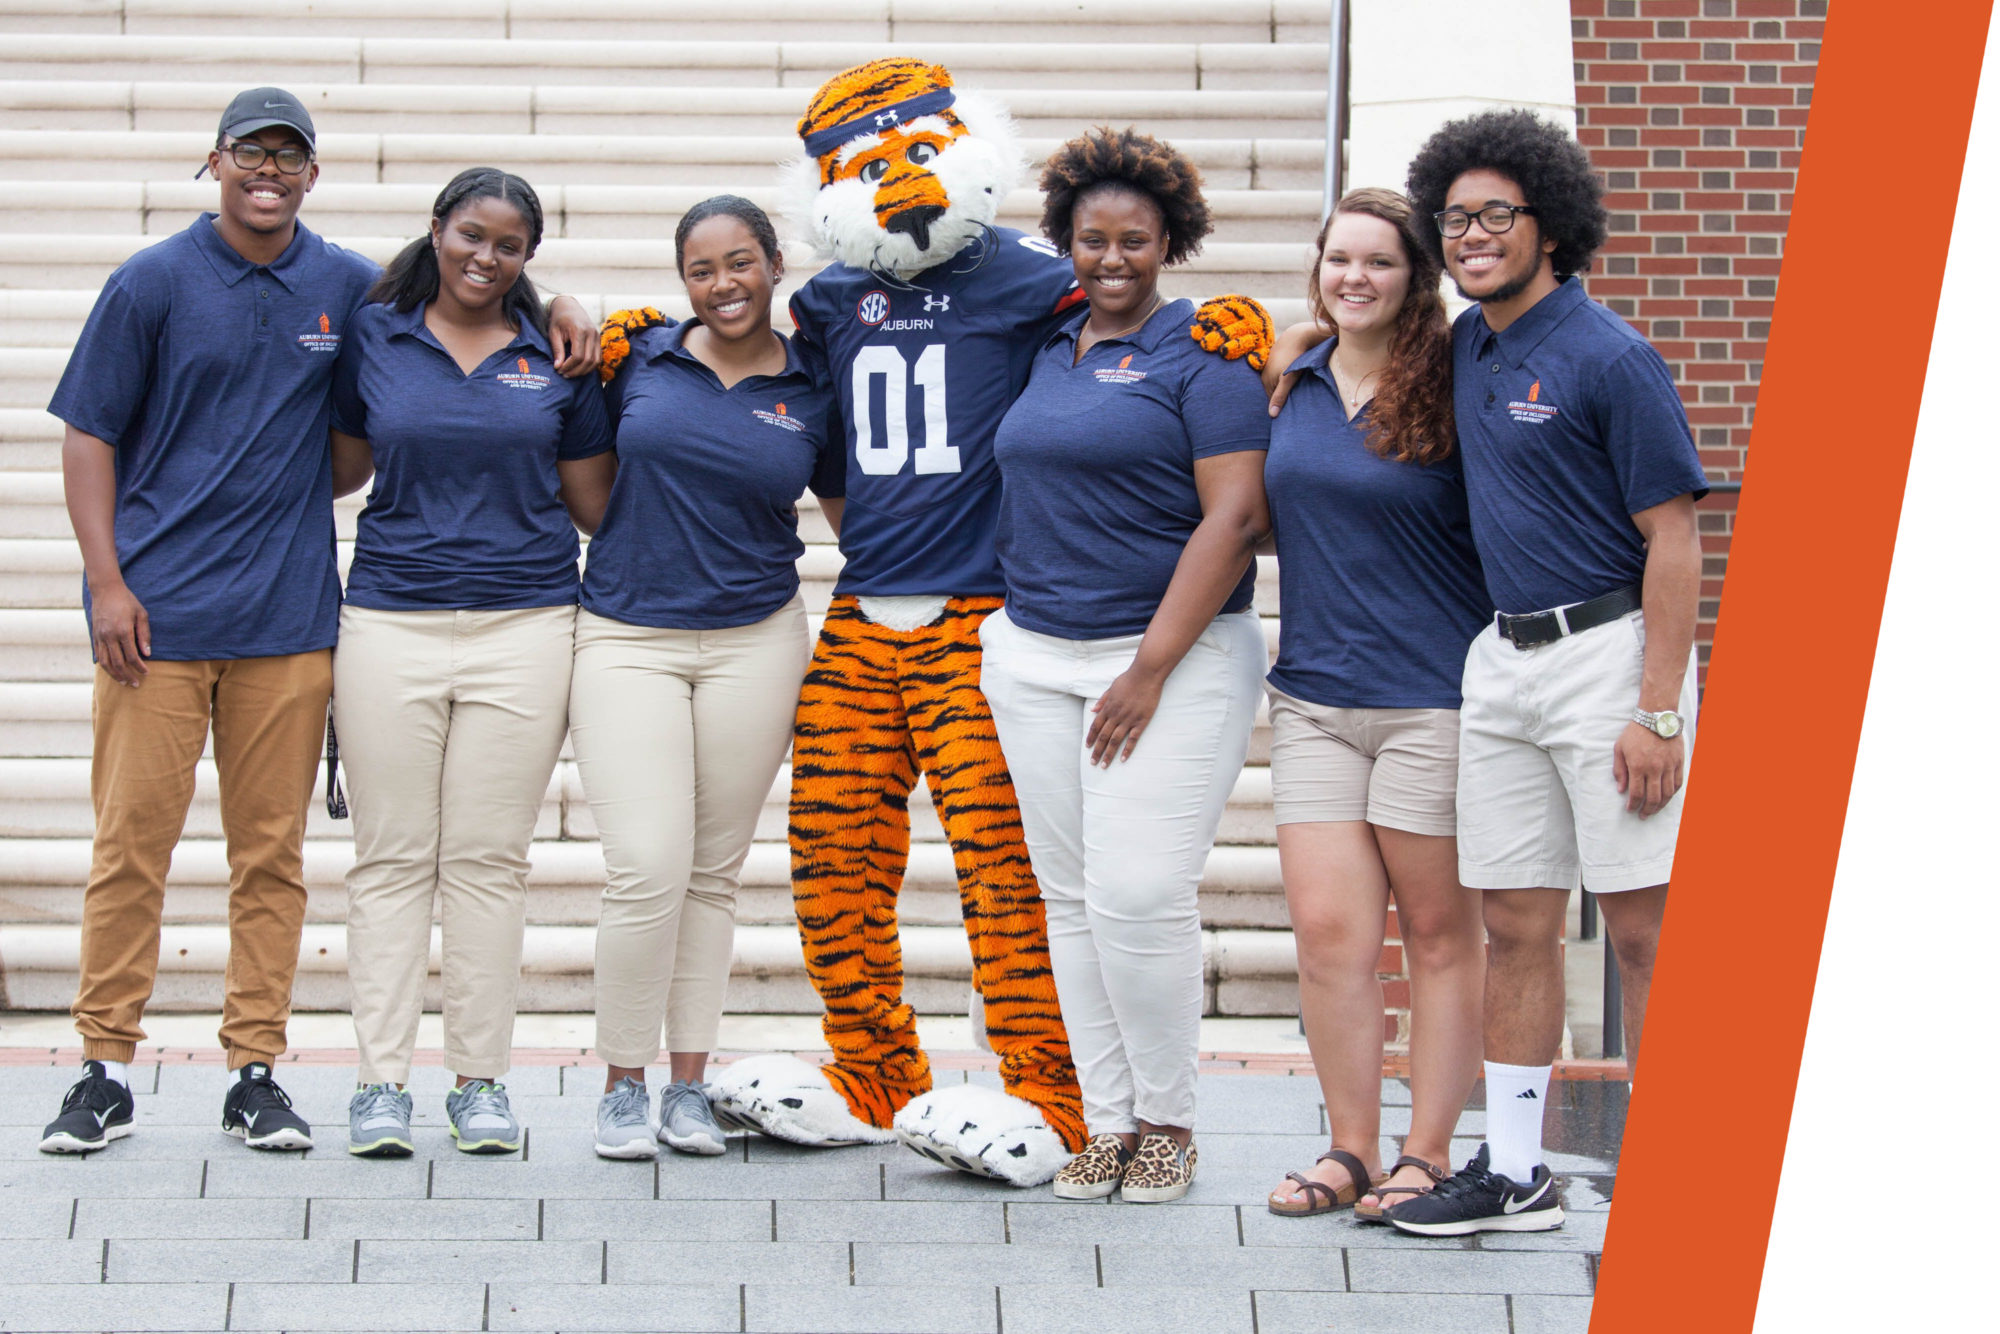 Aubie poses with students